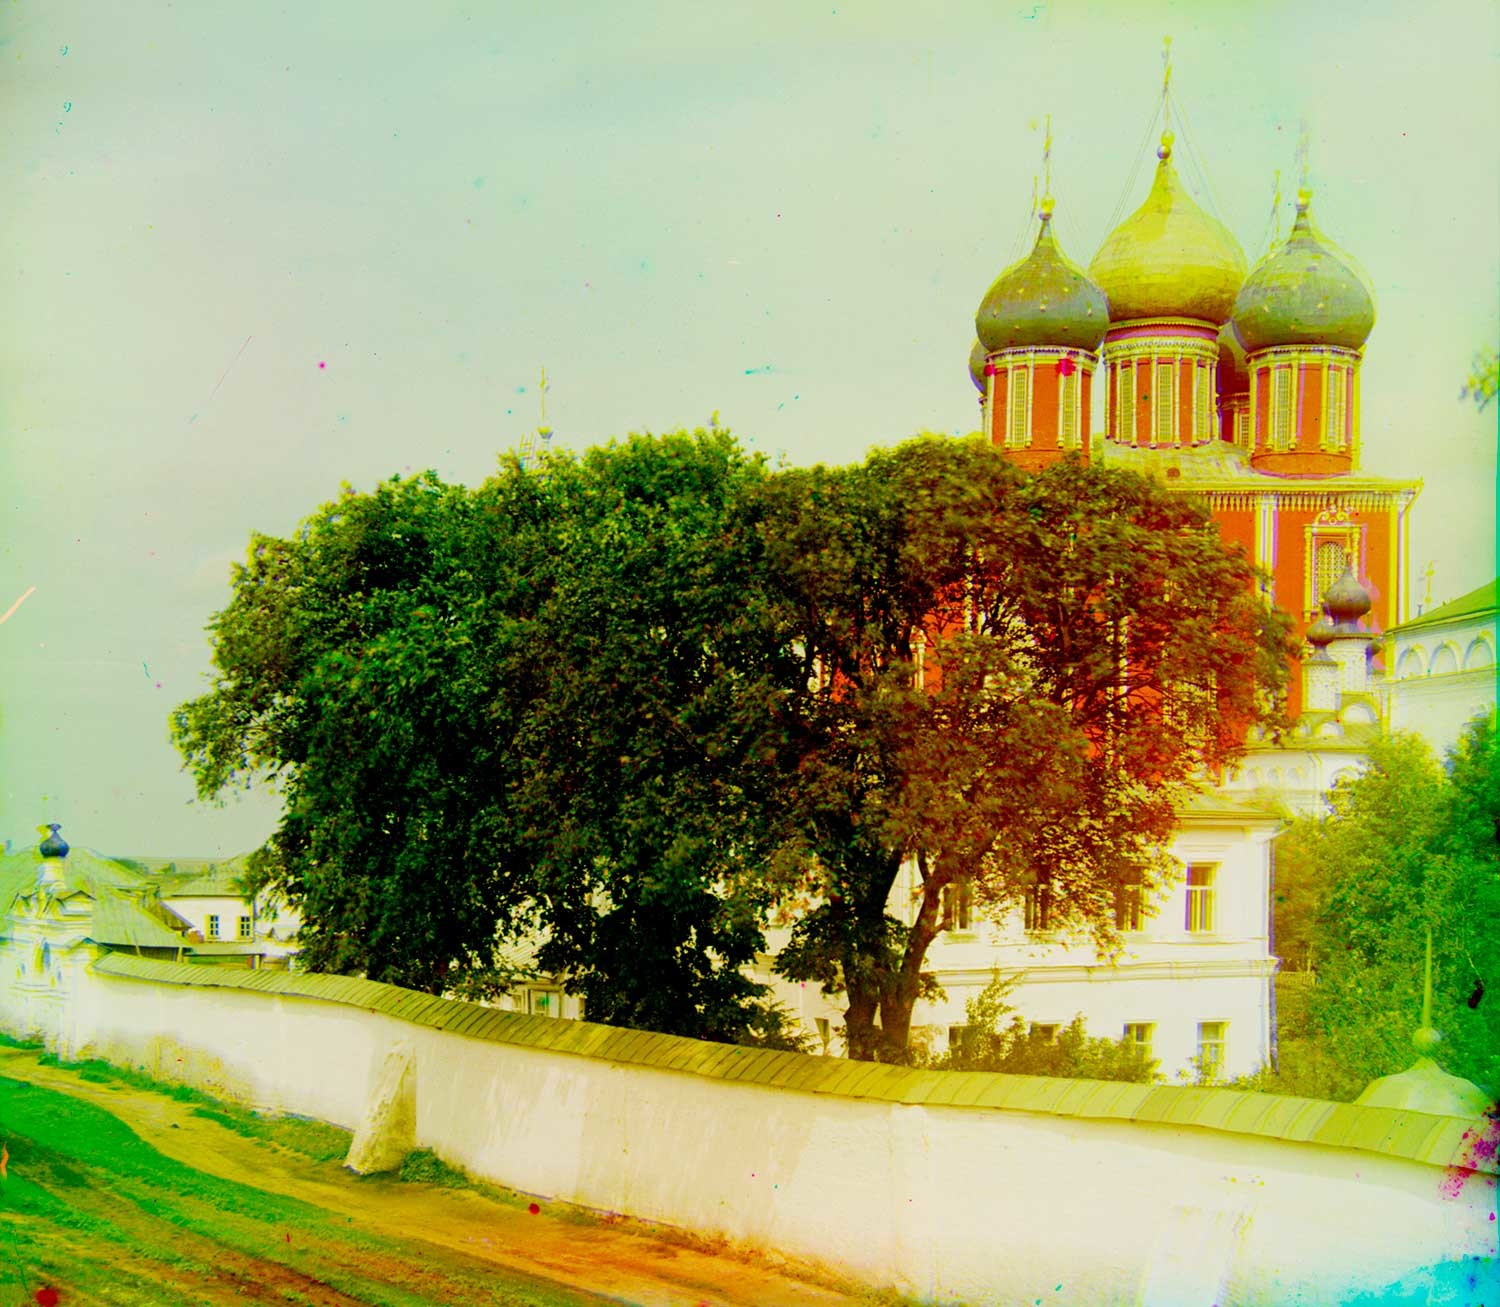 Ryazan Kremlin. Background: Dormition Cathedral. Foreground: wall of Transfiguration Monastery, Transfiguration Cathedral (far right). Summer 1912.